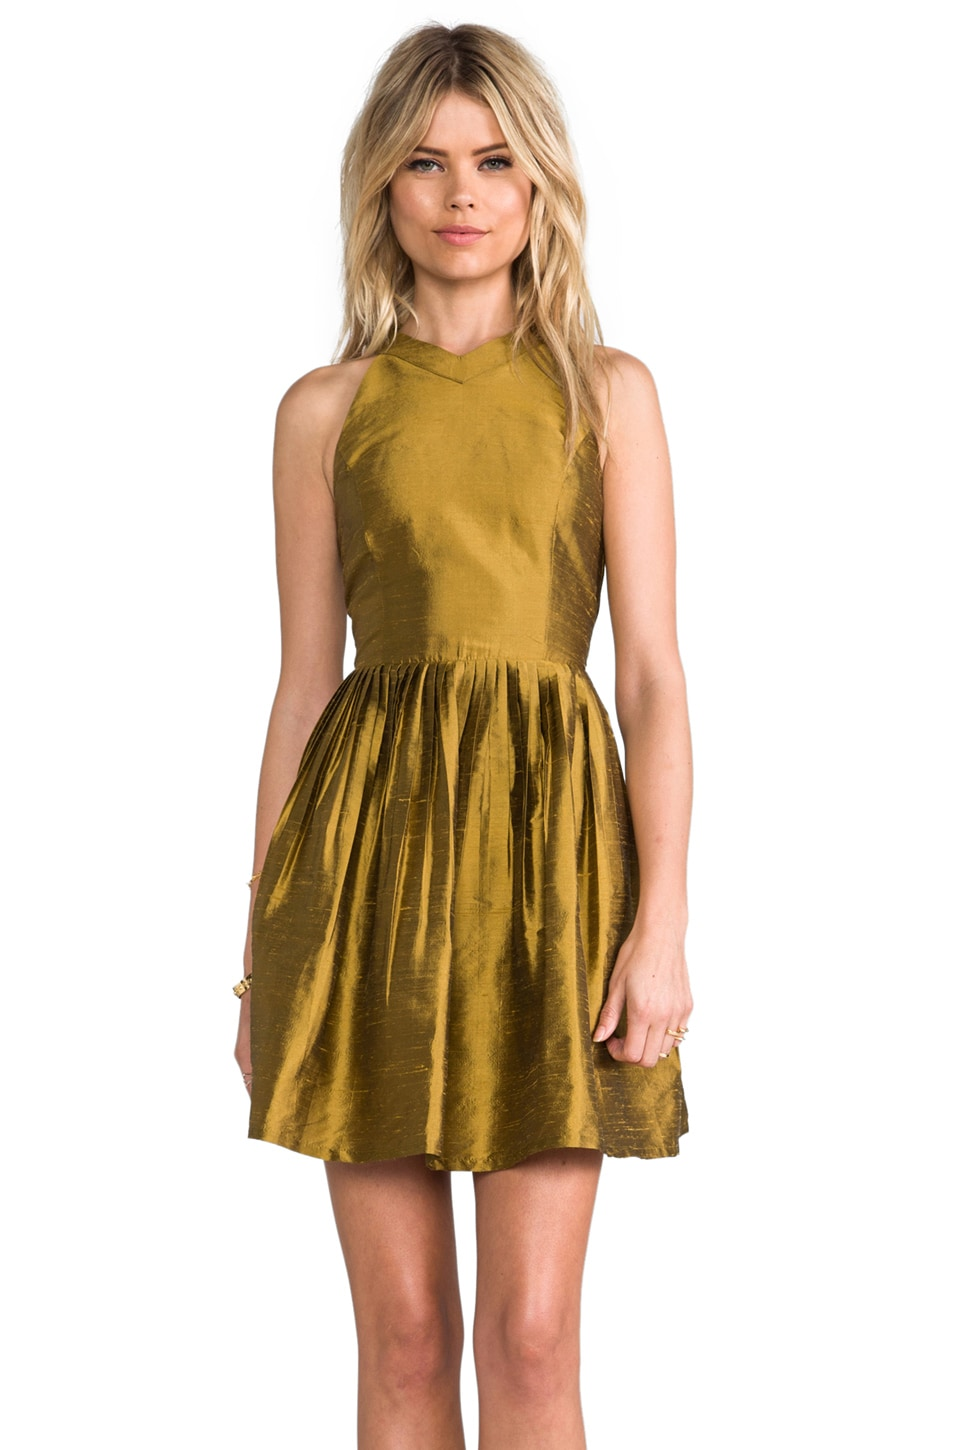 harlyn Pleated Cut Out Fit & Flare Dress in Gold